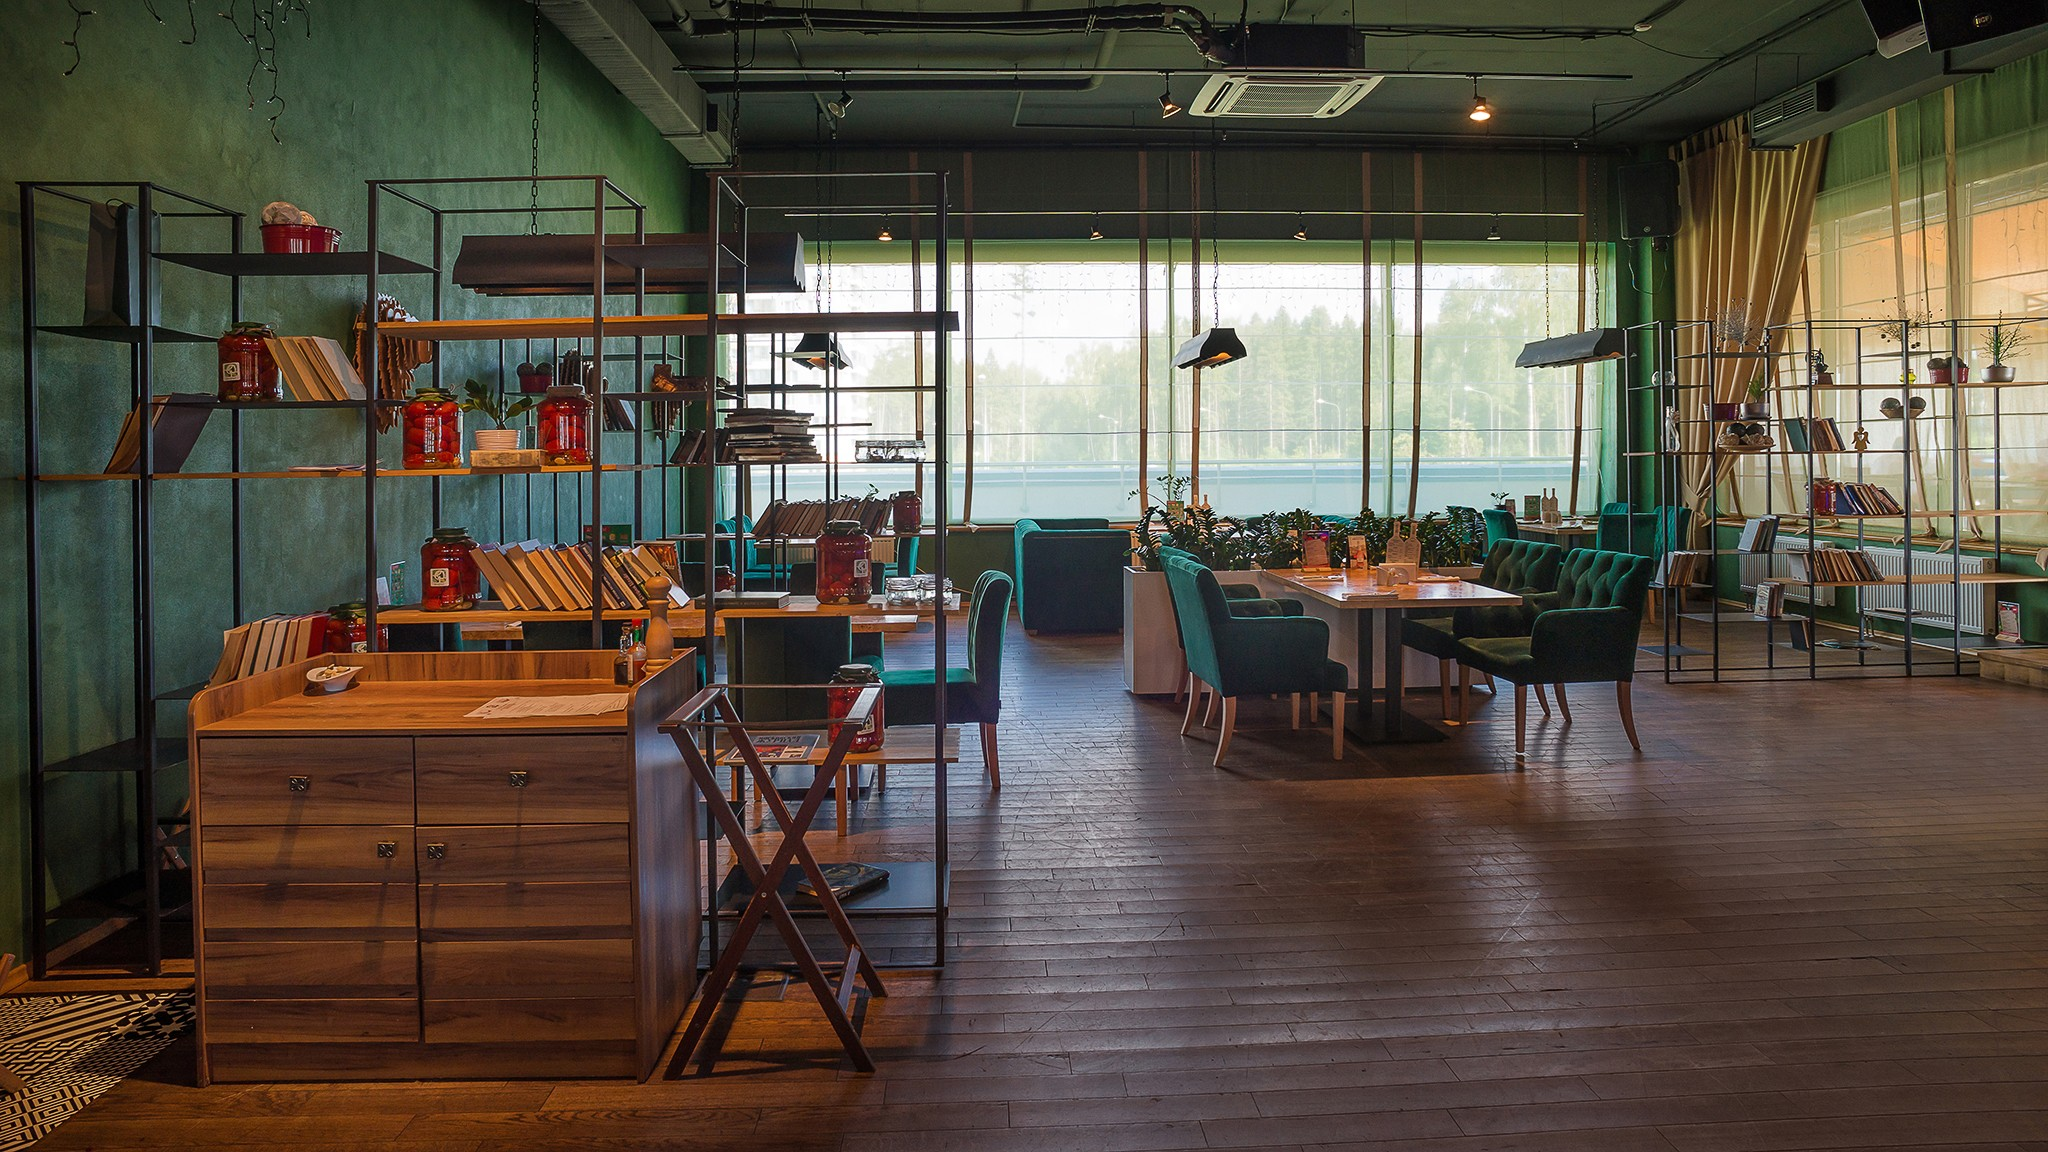 Professional photography of the interiors of cafes and restaurants by photographer Kirill Toll